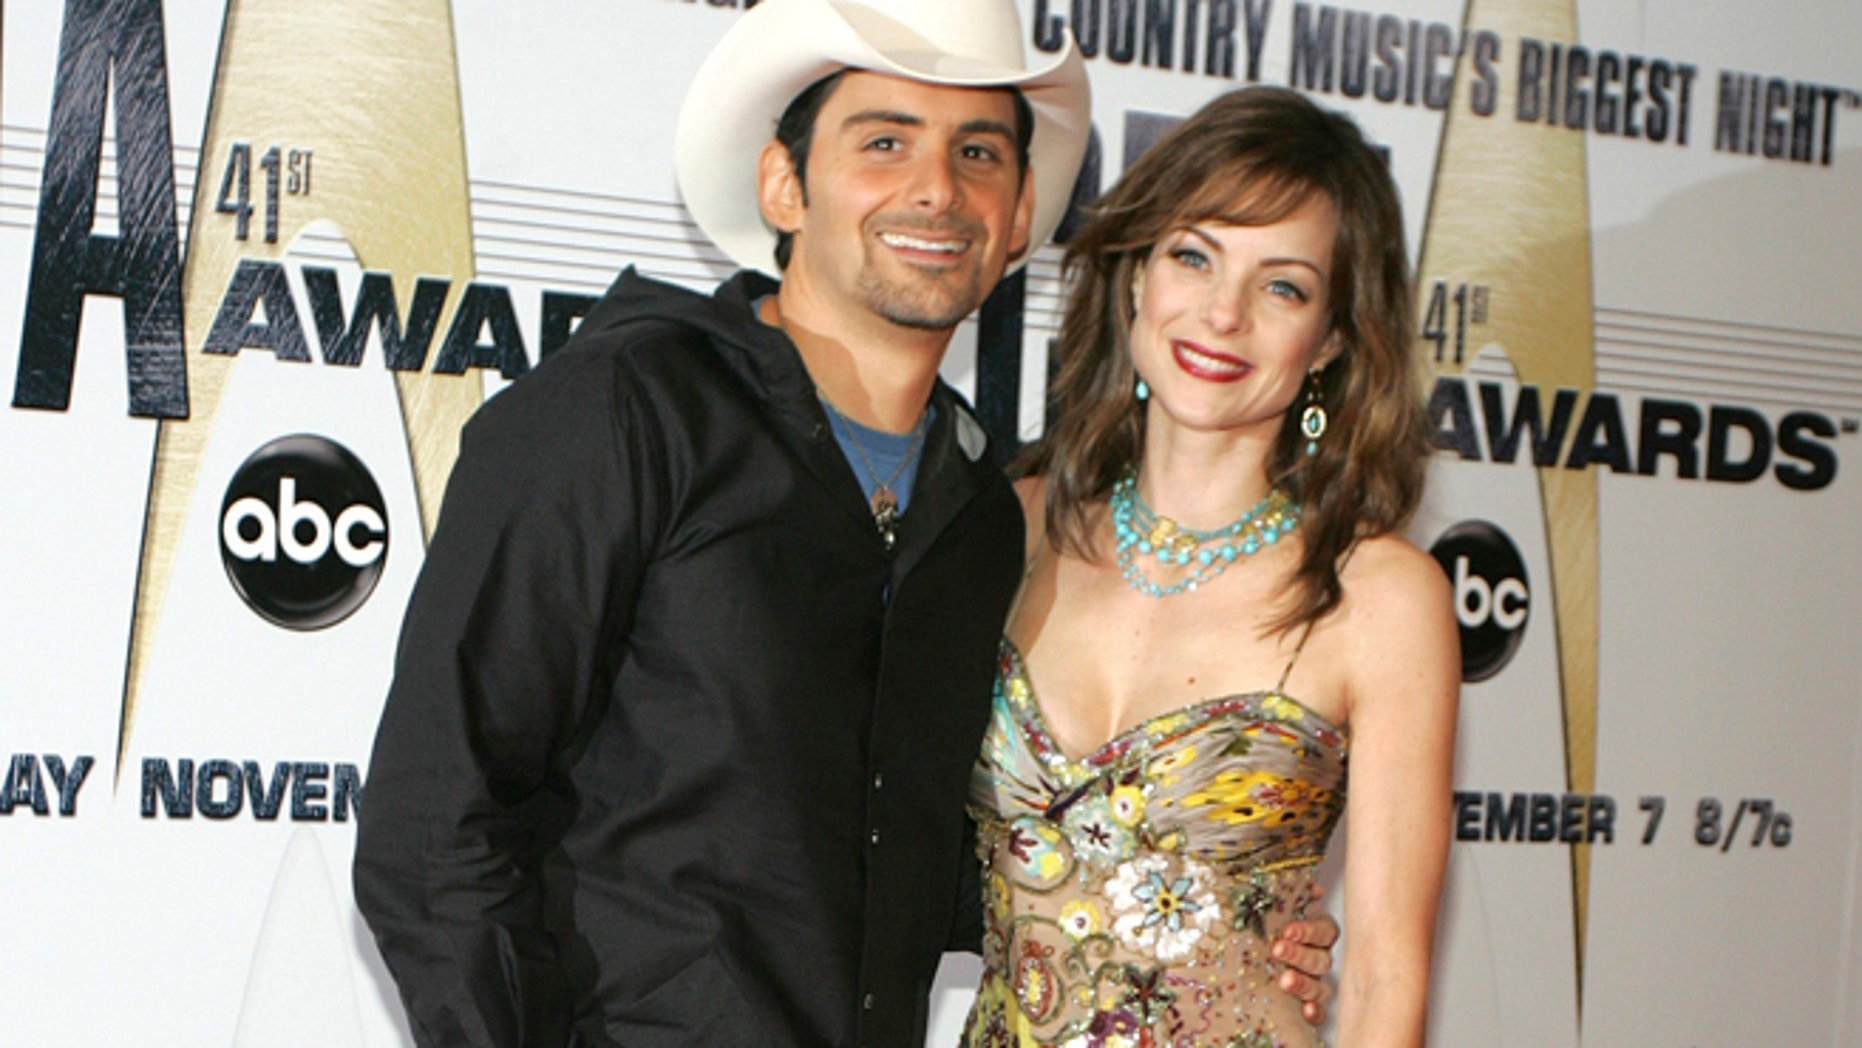 Singer Brad Paisley and his wife, actress Kimberly Williams-Paisley, pose as they arrive at the 41st annual Country Music Awards in Nashville, Tennessee.